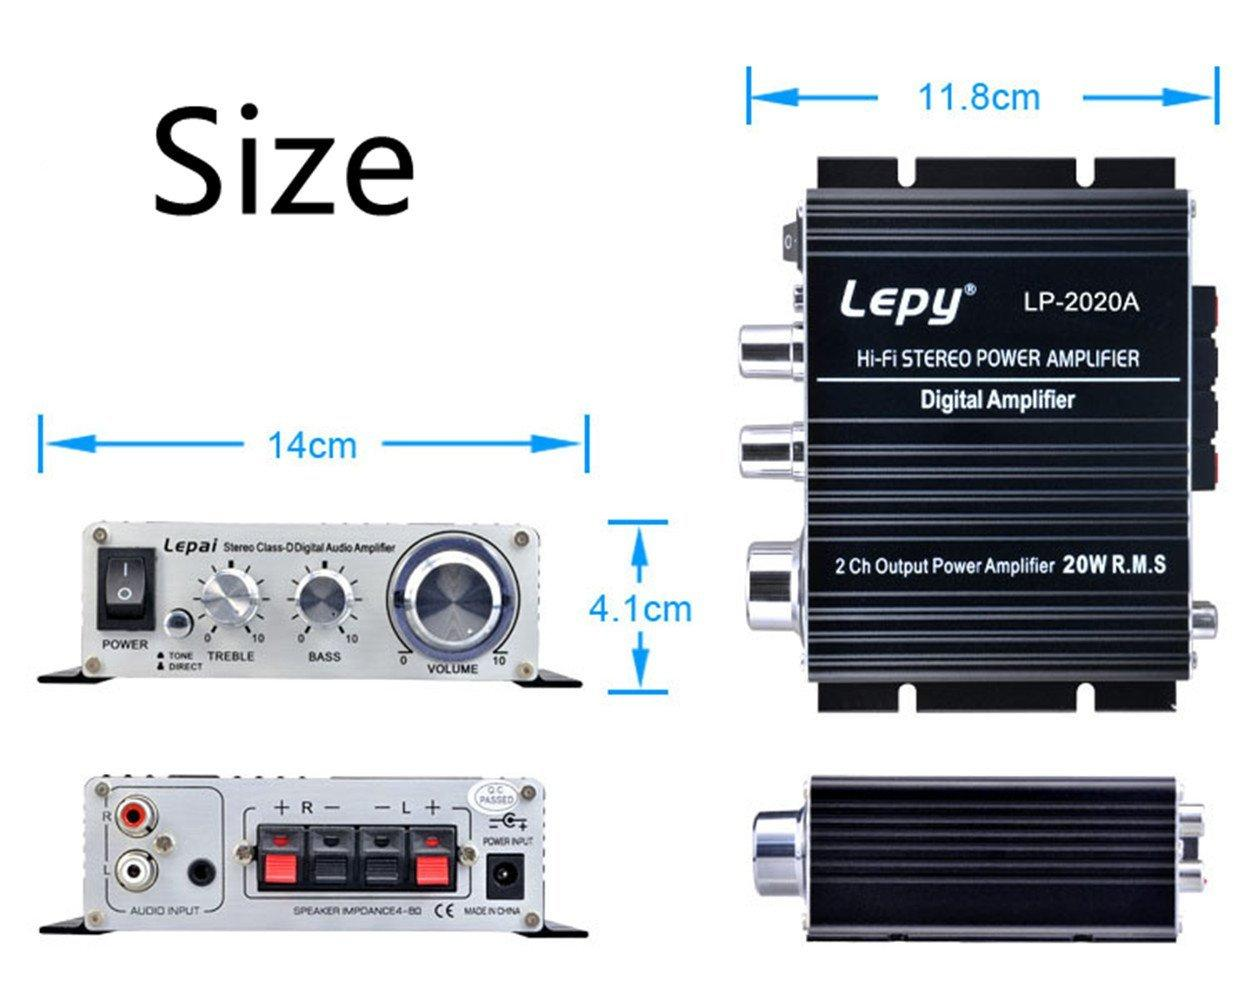 Lepy Lp 2020a Hi Fi Digital Amplifier Mini Stereo Audio Low Voltage Classd Power For Portable Devices View Larger